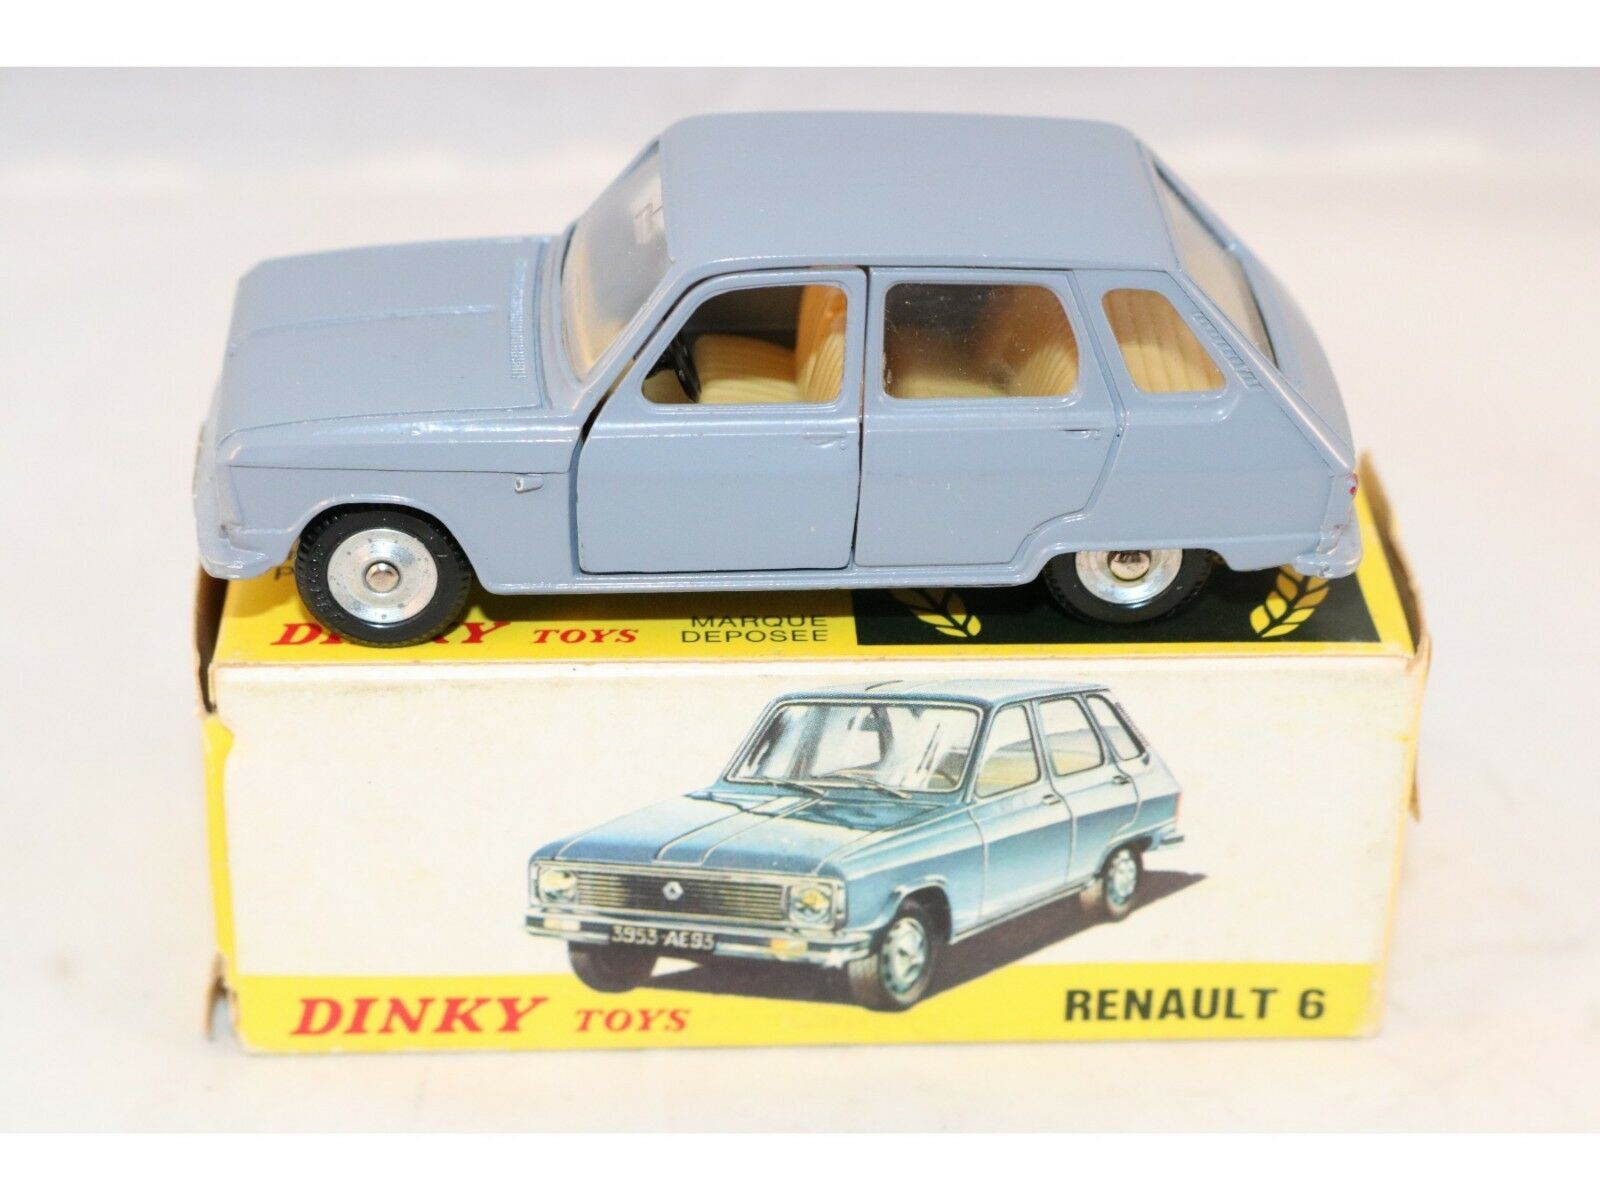 Dinky Toys 1453 Renault 6 Perfect mint in box difficult to find a beauty